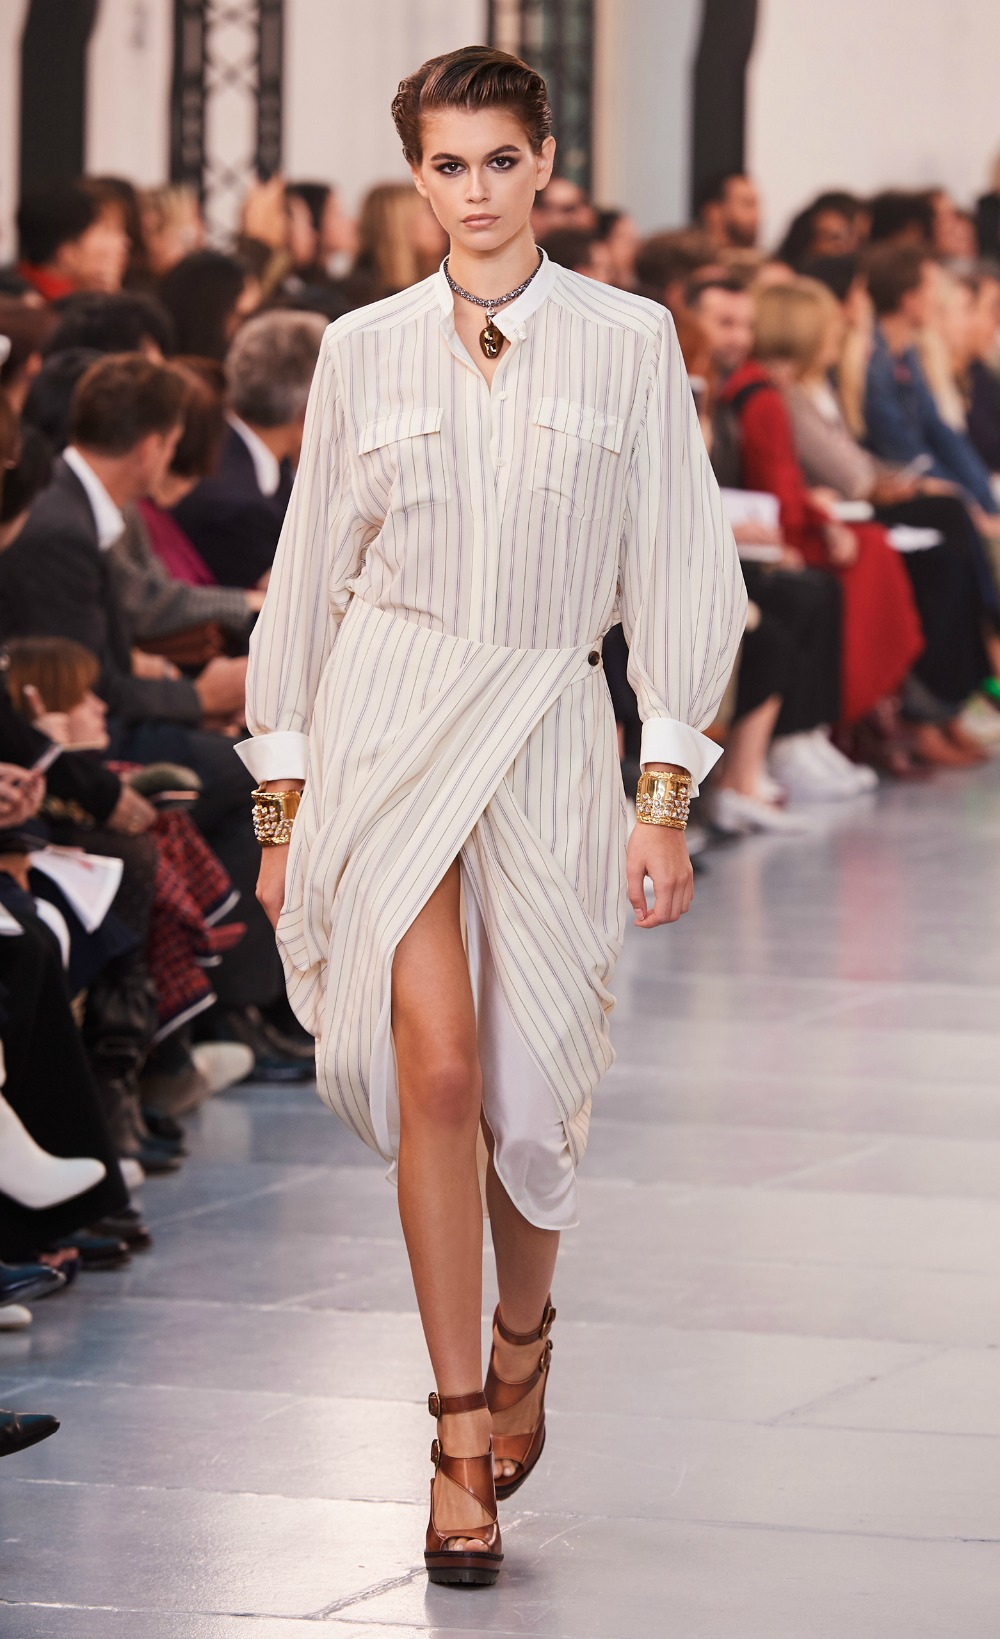 Chloe Spring 2020 Collection Runway at Paris Fashion Week #FashionWeek #HighFashion #DEsignerFashion #Chloe